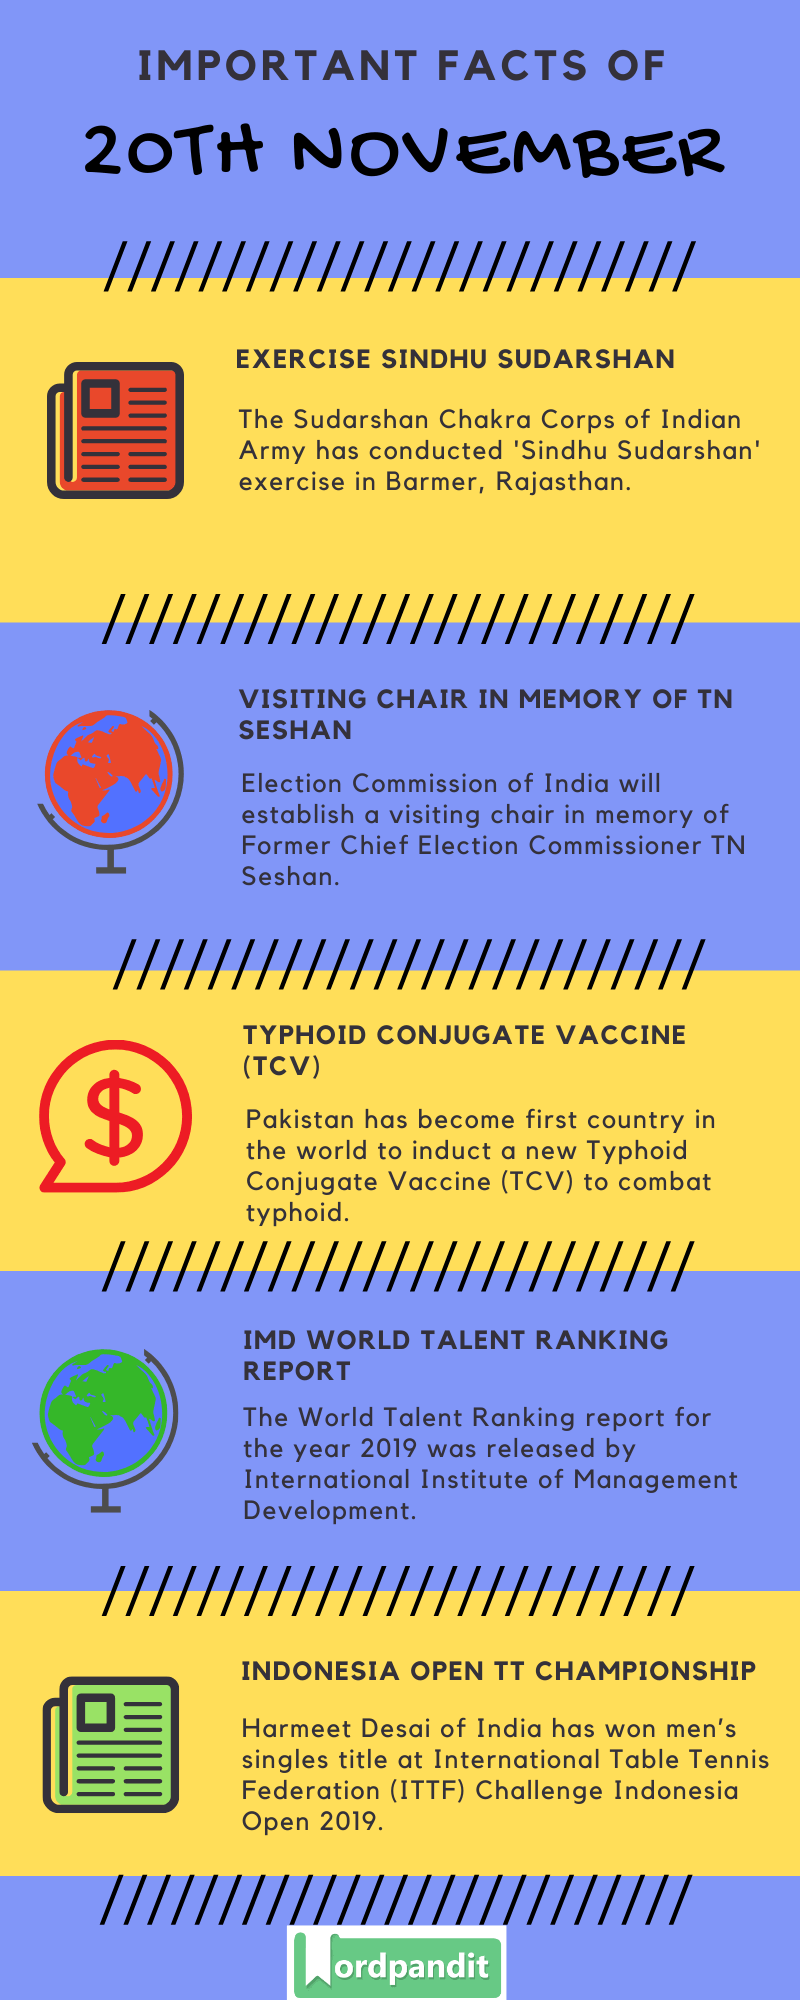 Daily Current Affairs 20 November 2019 Current Affairs Quiz 20 November 2019 Current Affairs Infographic